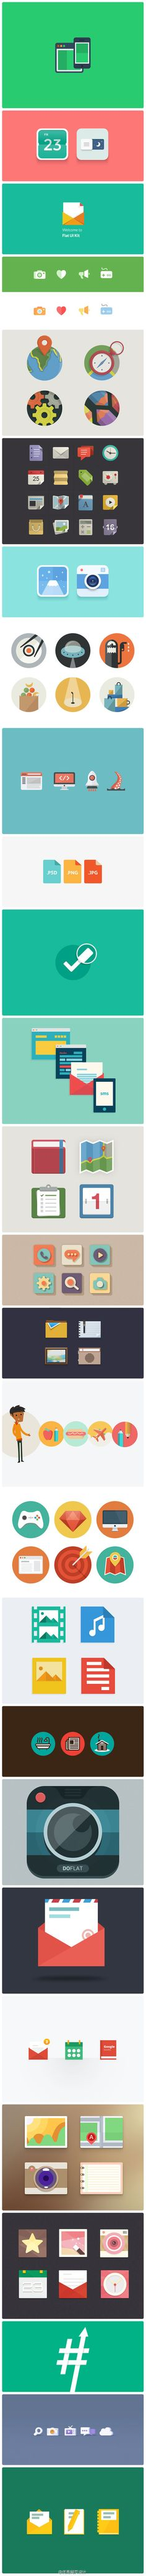 Beautiful examples of flat icons design by @christianvasile on @Designmodo